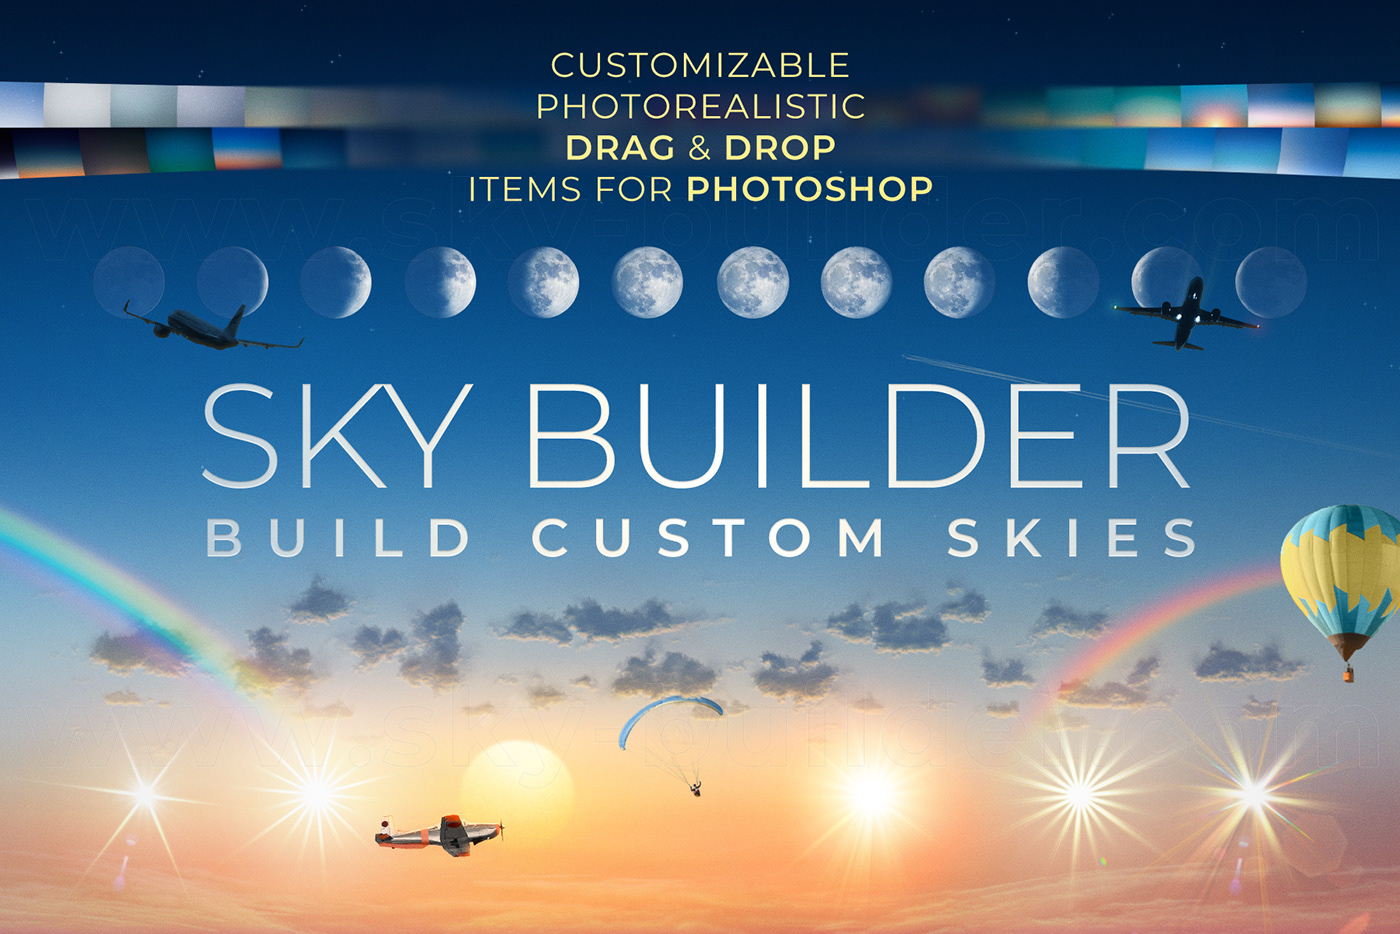 SKY,builder,bundle,skies,Create,clouds,Items,objects,photoshop,sunlight